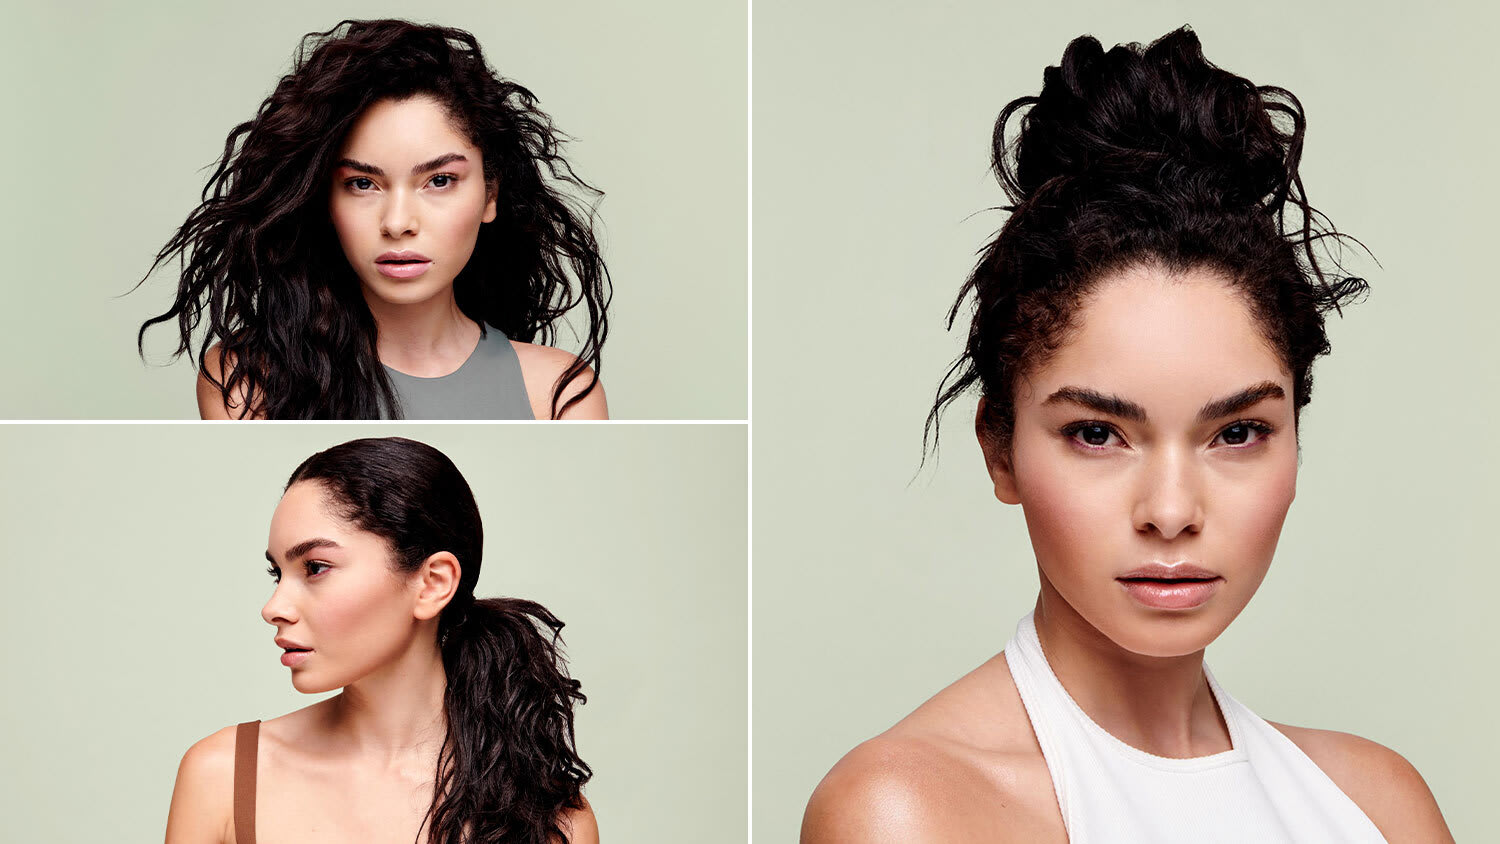 wavy hair model with different hairstyles